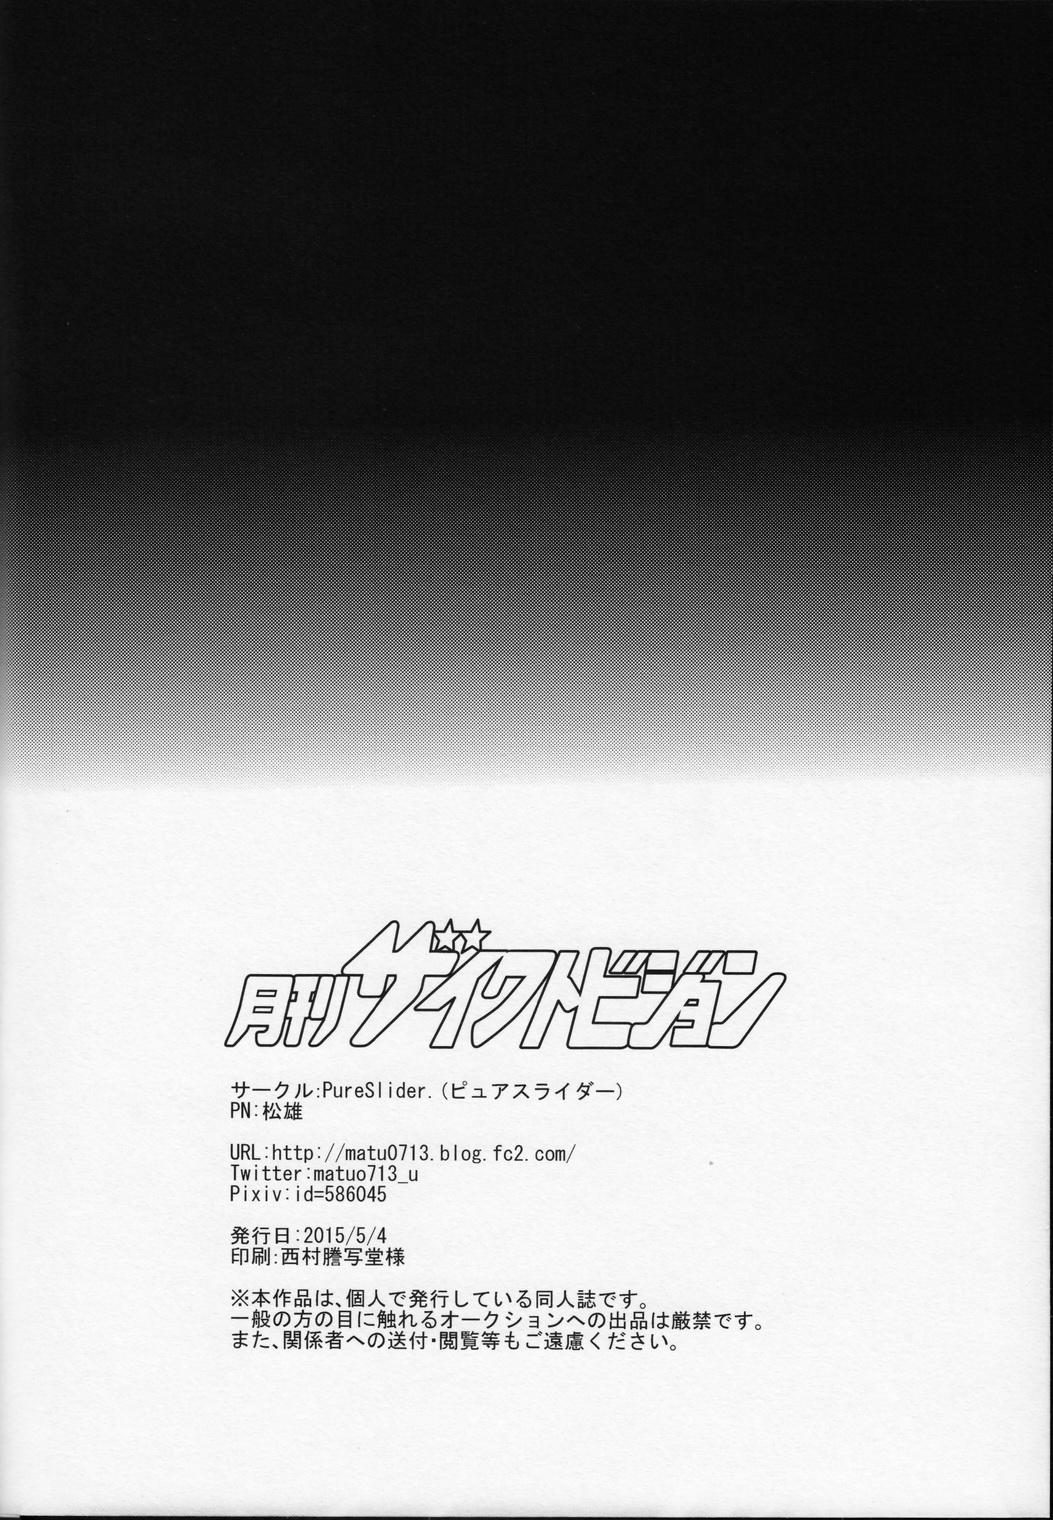 MONTHLY THE IWATOVISION 36